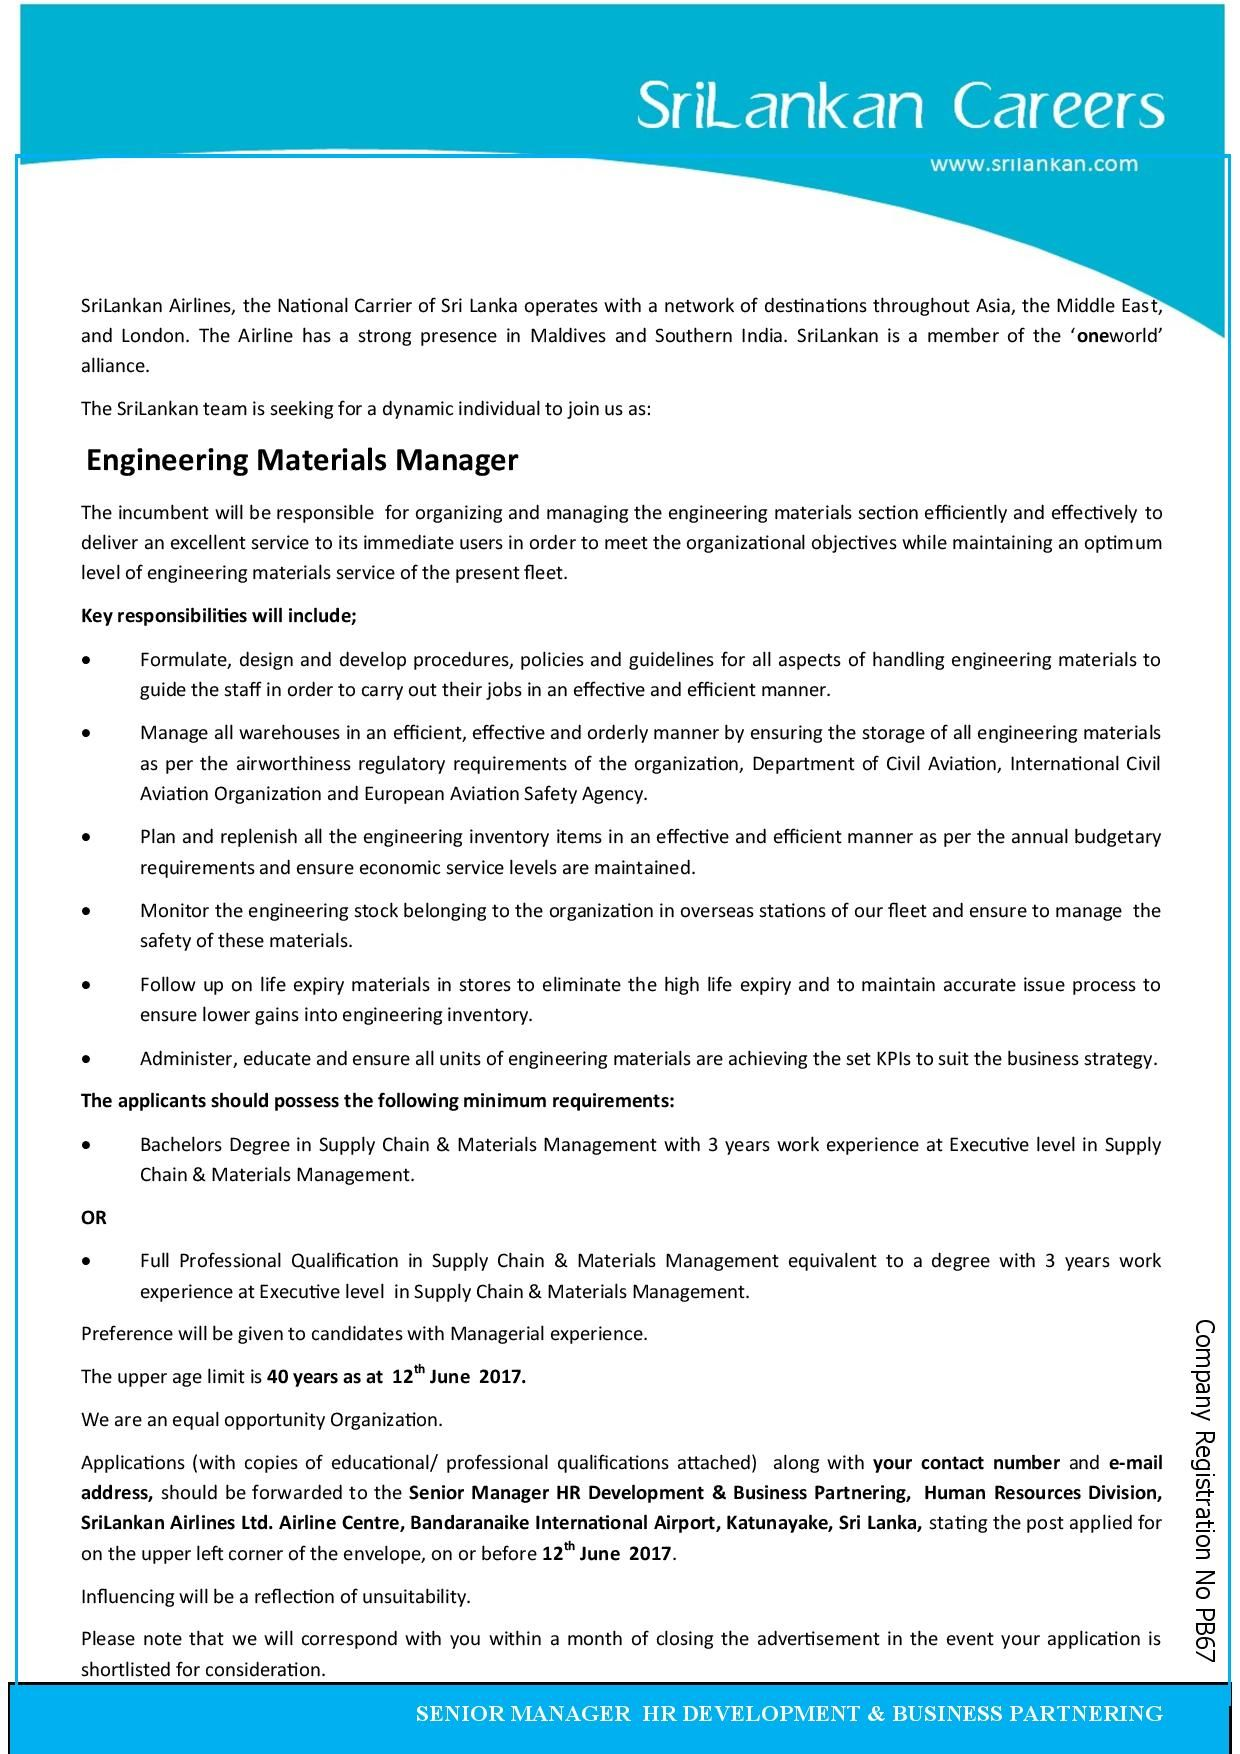 engineering material manager at sri lankan airlines careerfirst